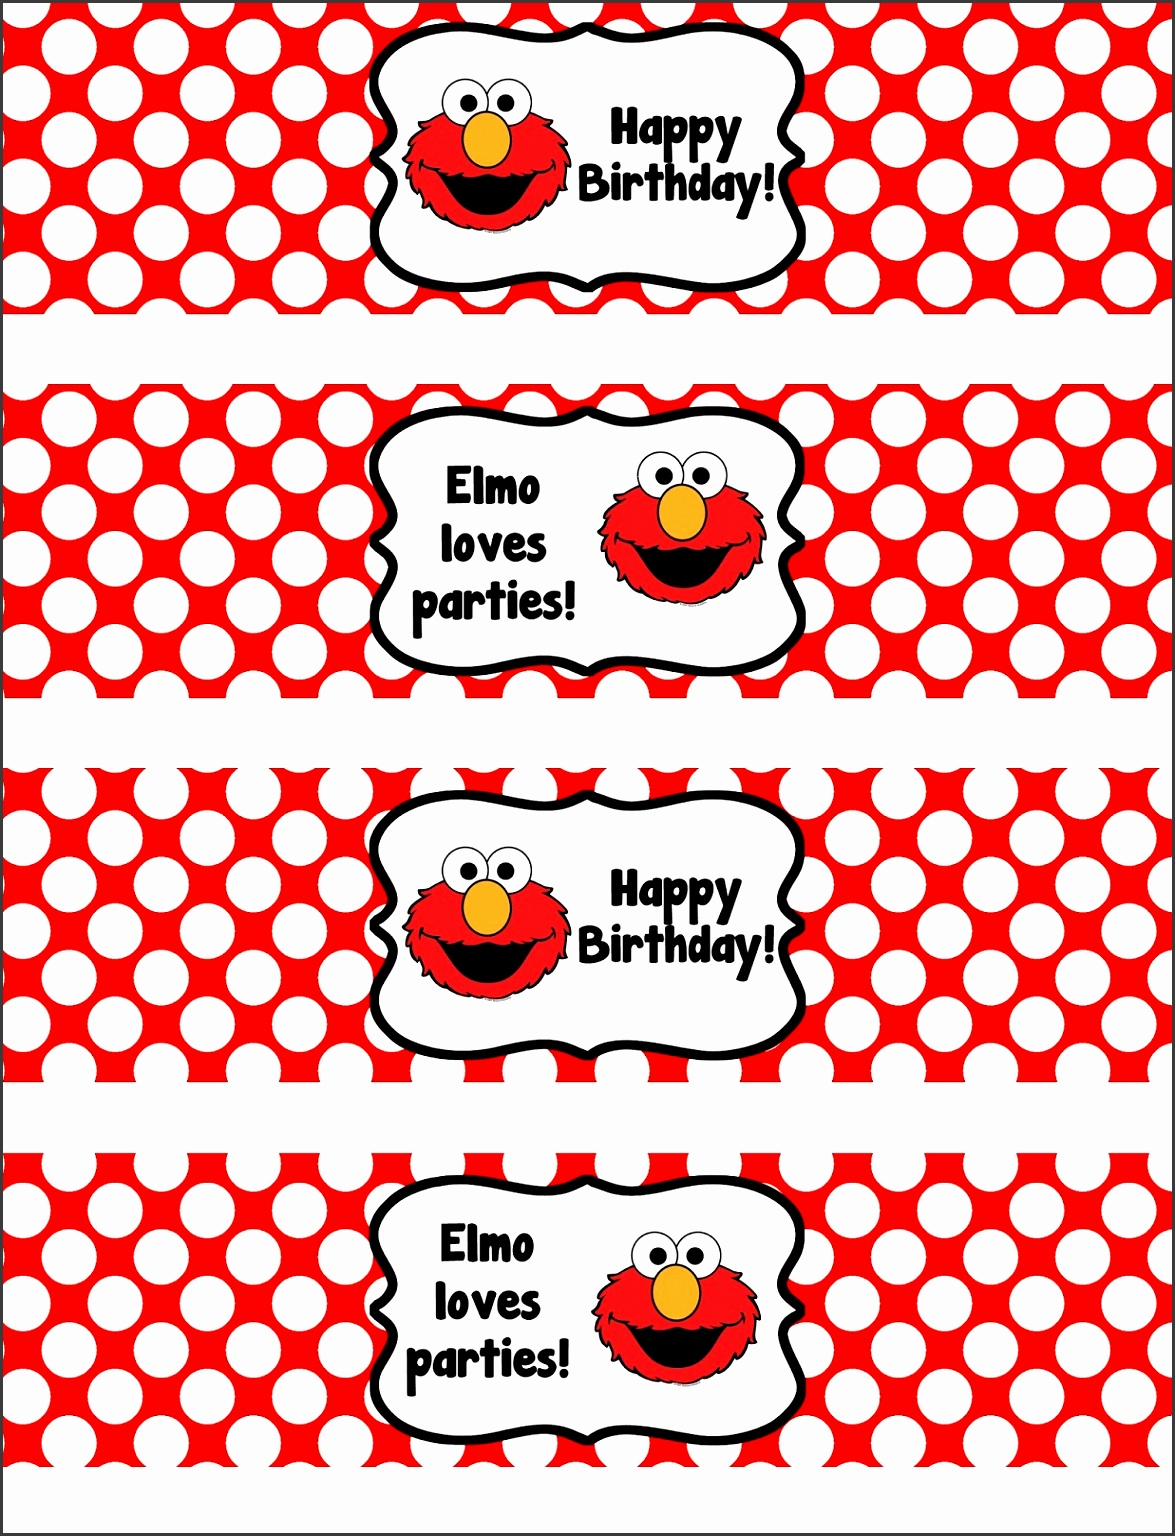 Binge crafter free printable elmo happy birthday water bottle clipart